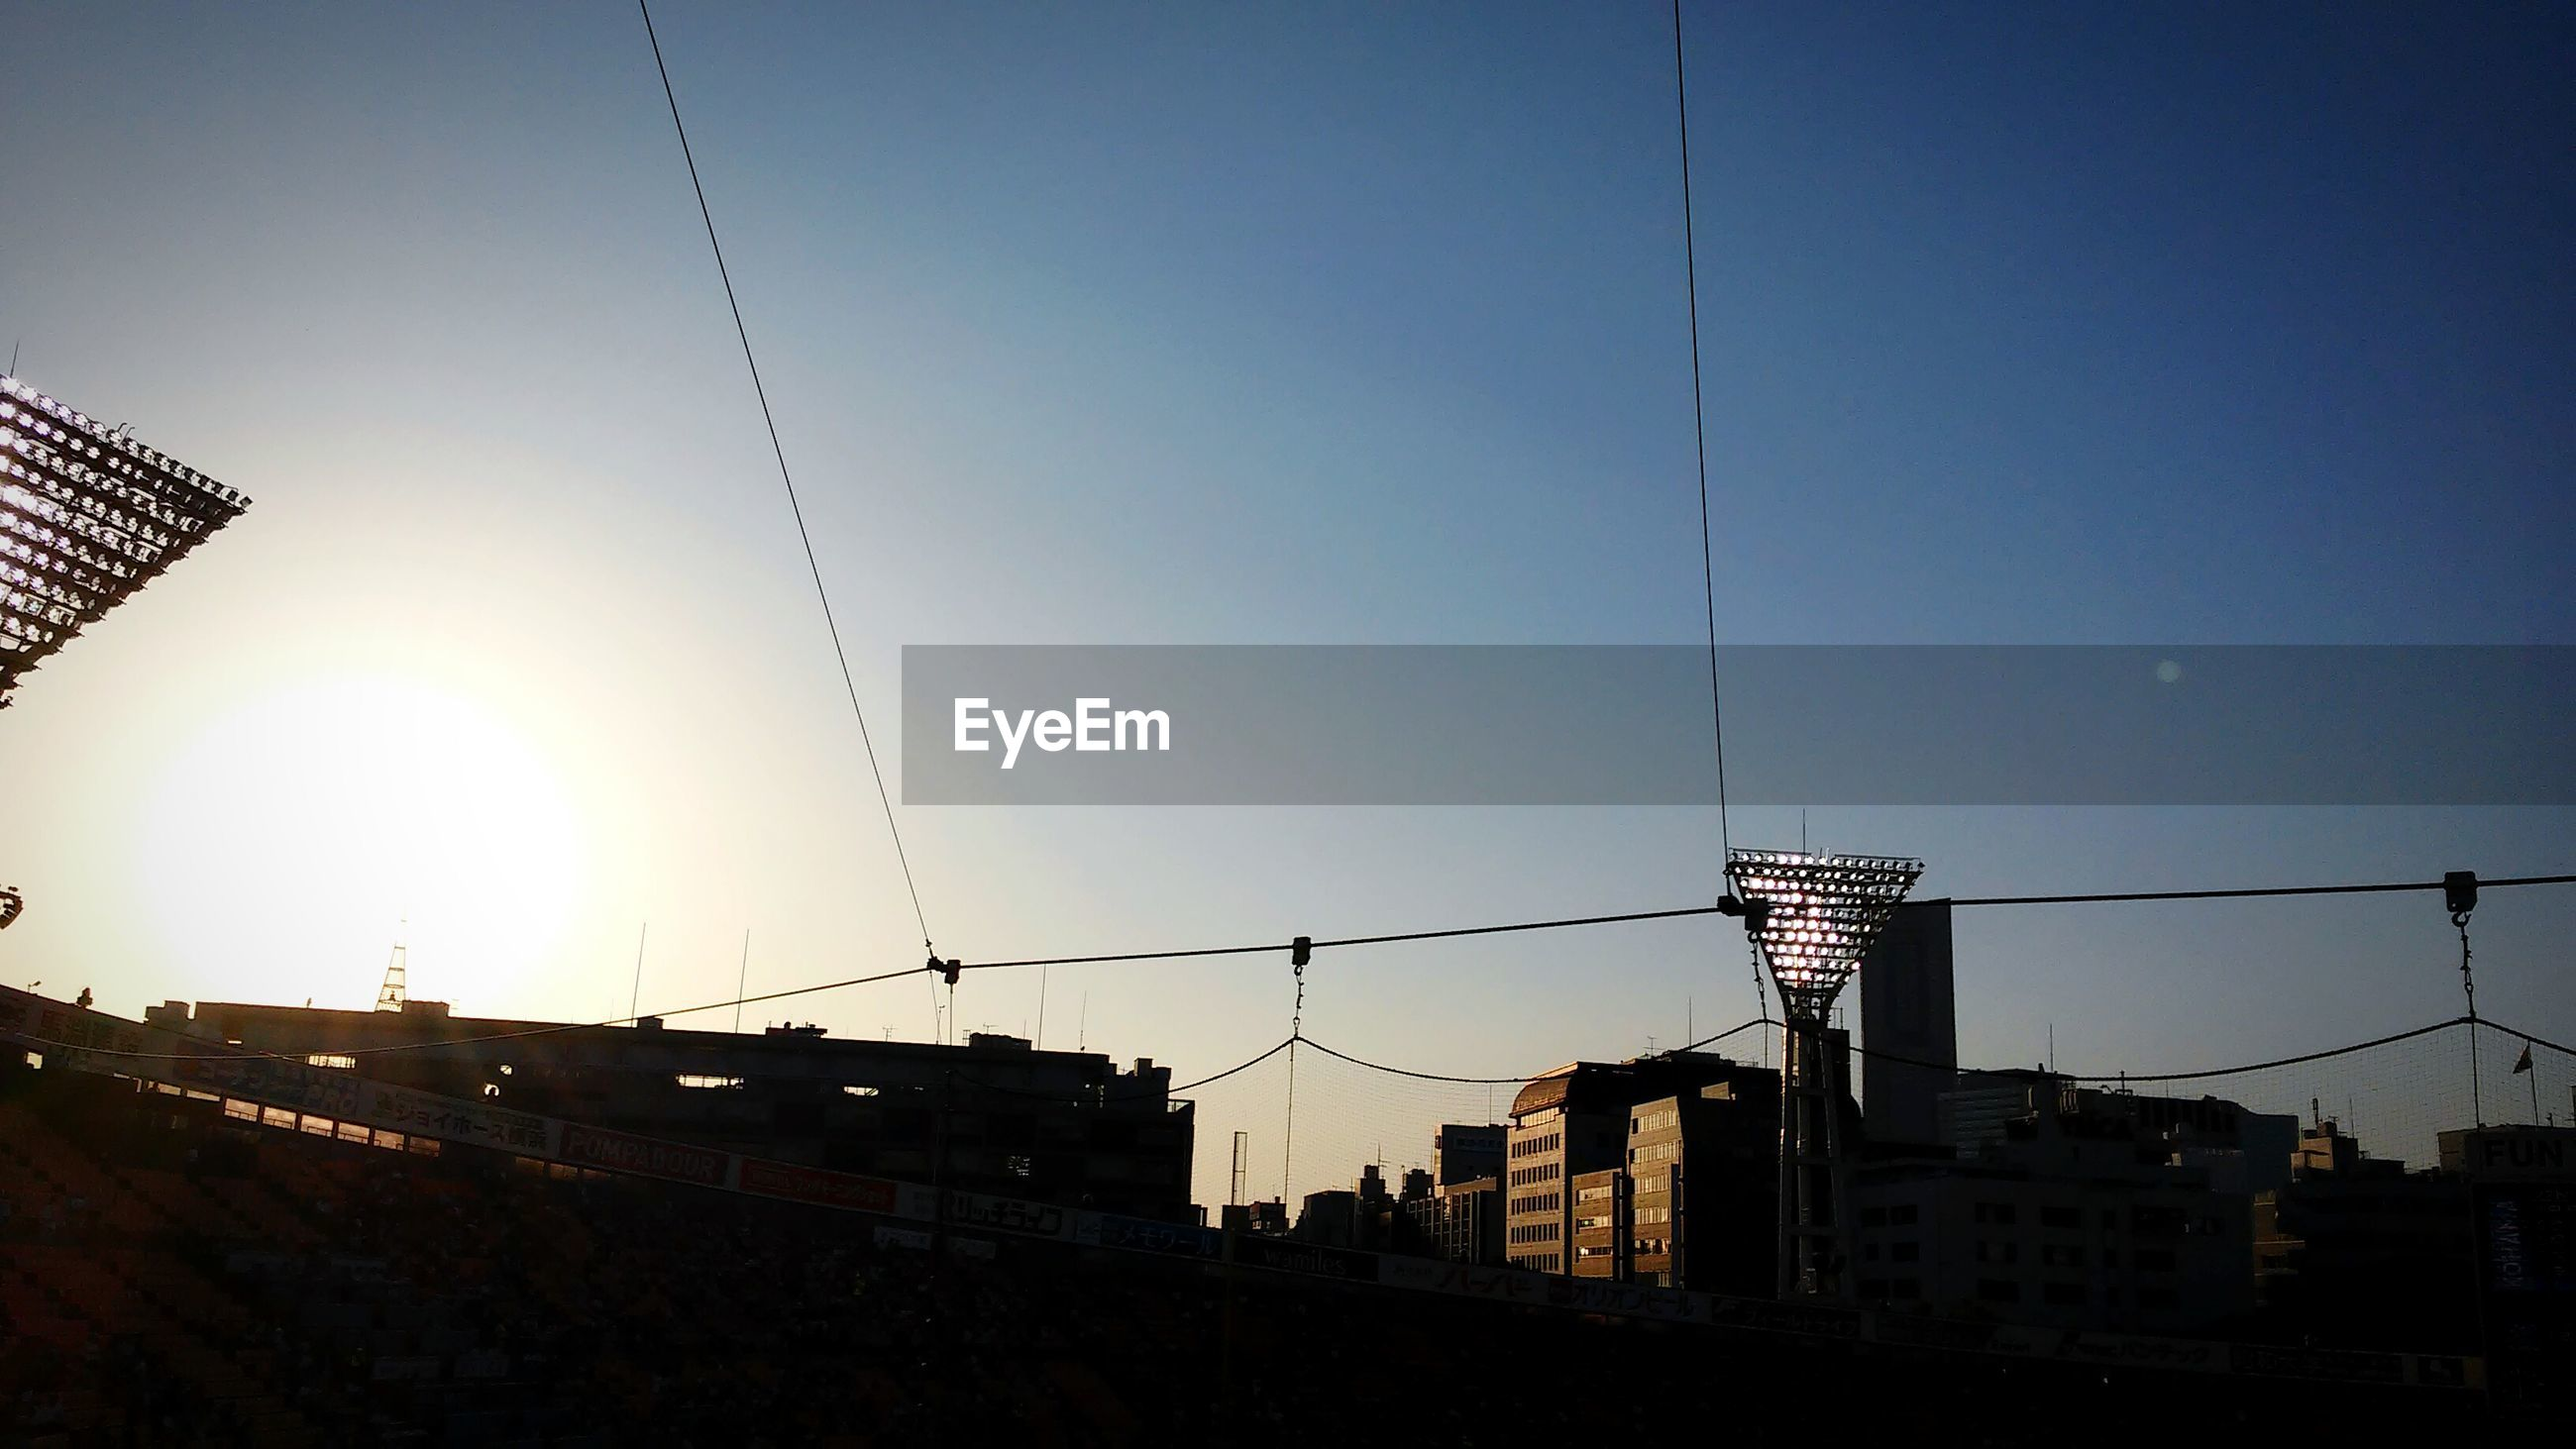 built structure, architecture, building exterior, clear sky, low angle view, sunset, sun, blue, silhouette, copy space, city, sunlight, sky, cable, power line, outdoors, connection, lens flare, electricity, street light